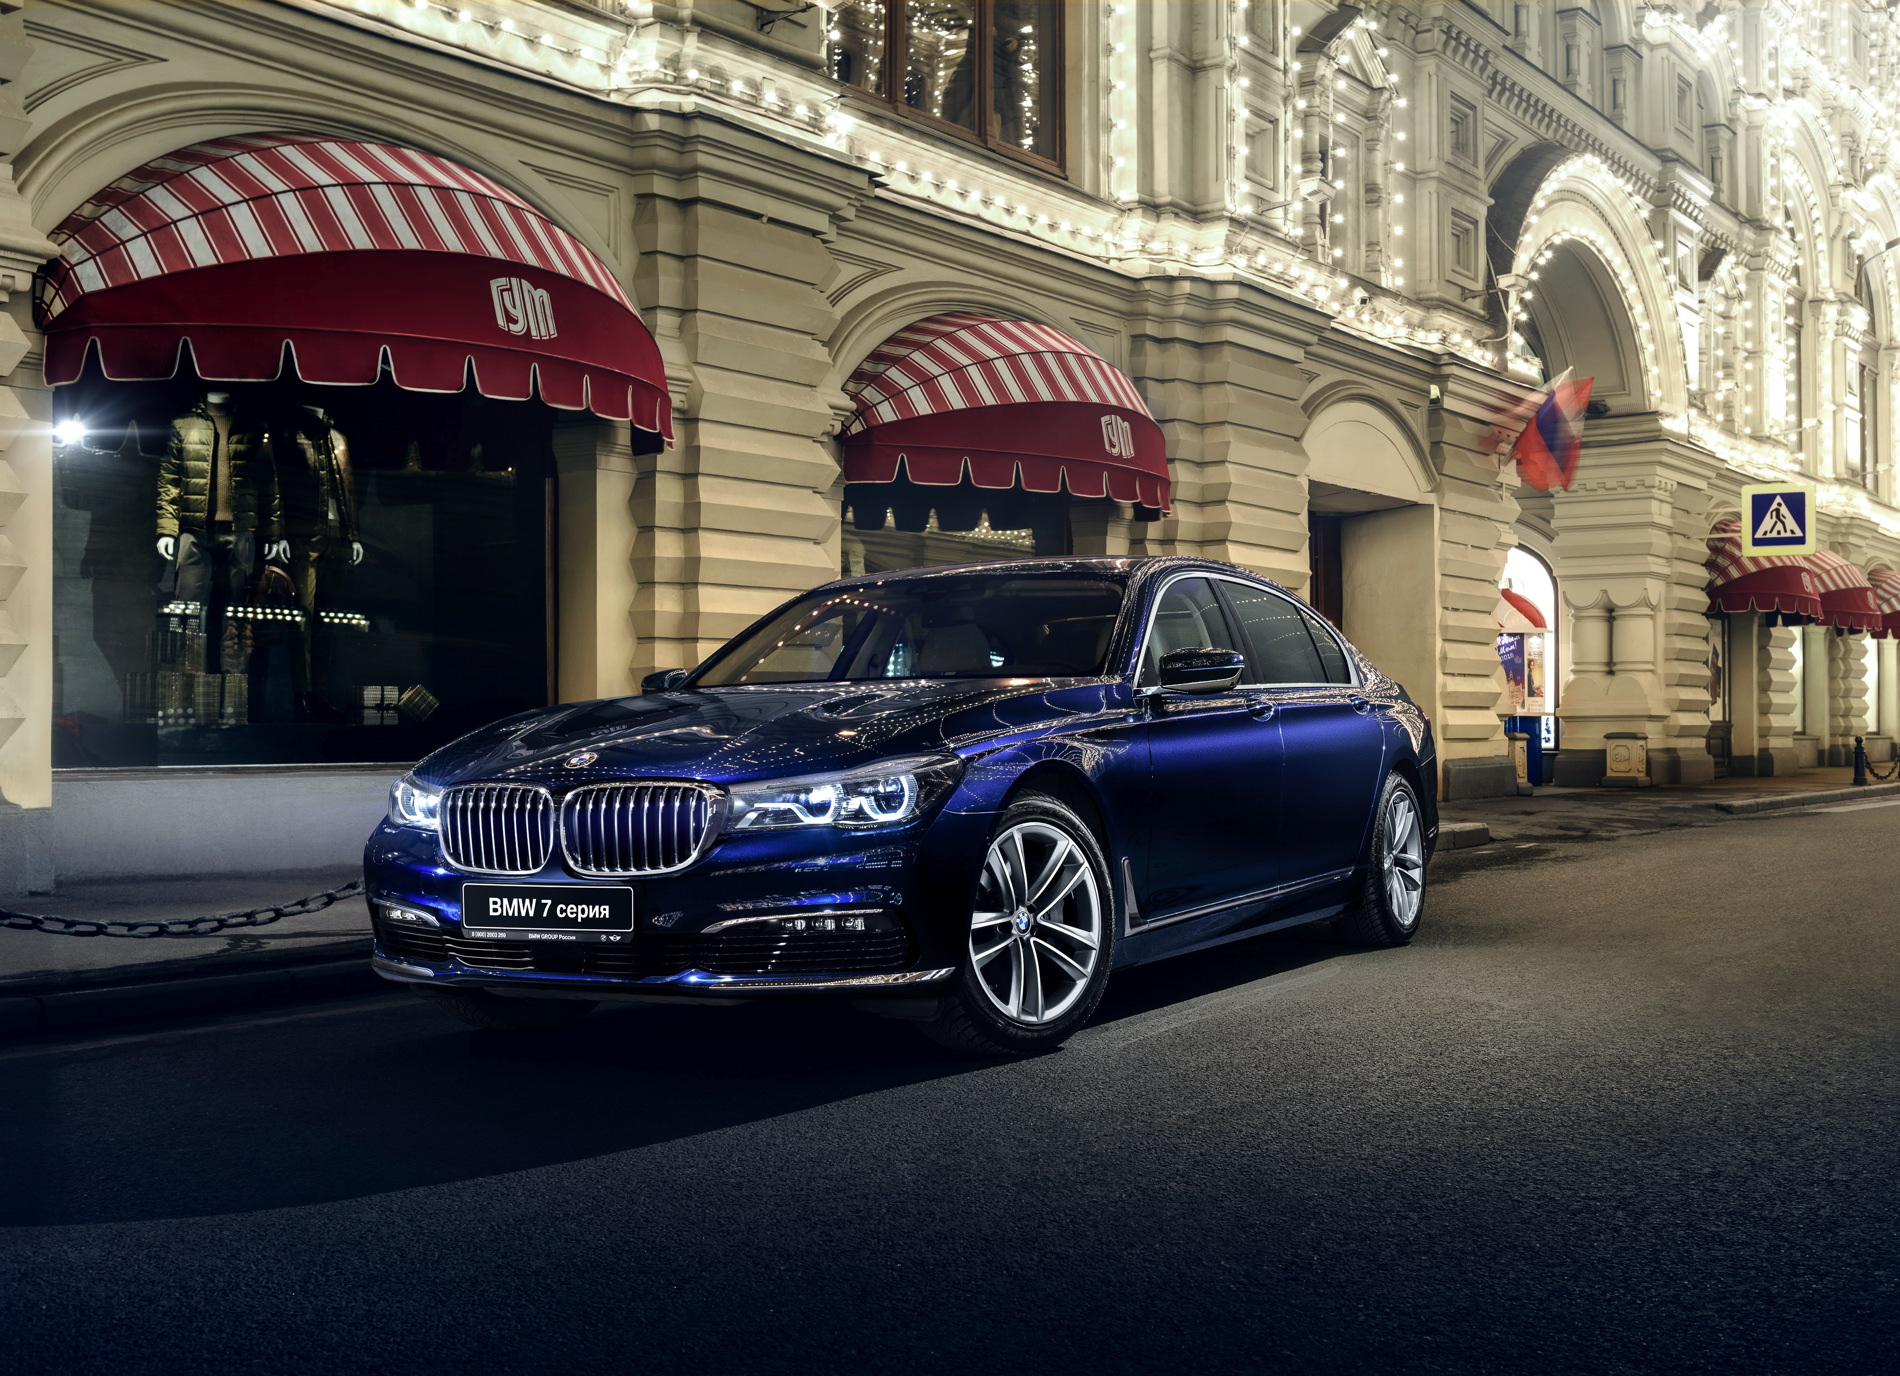 2016 BMW 7 Series luxury images 22